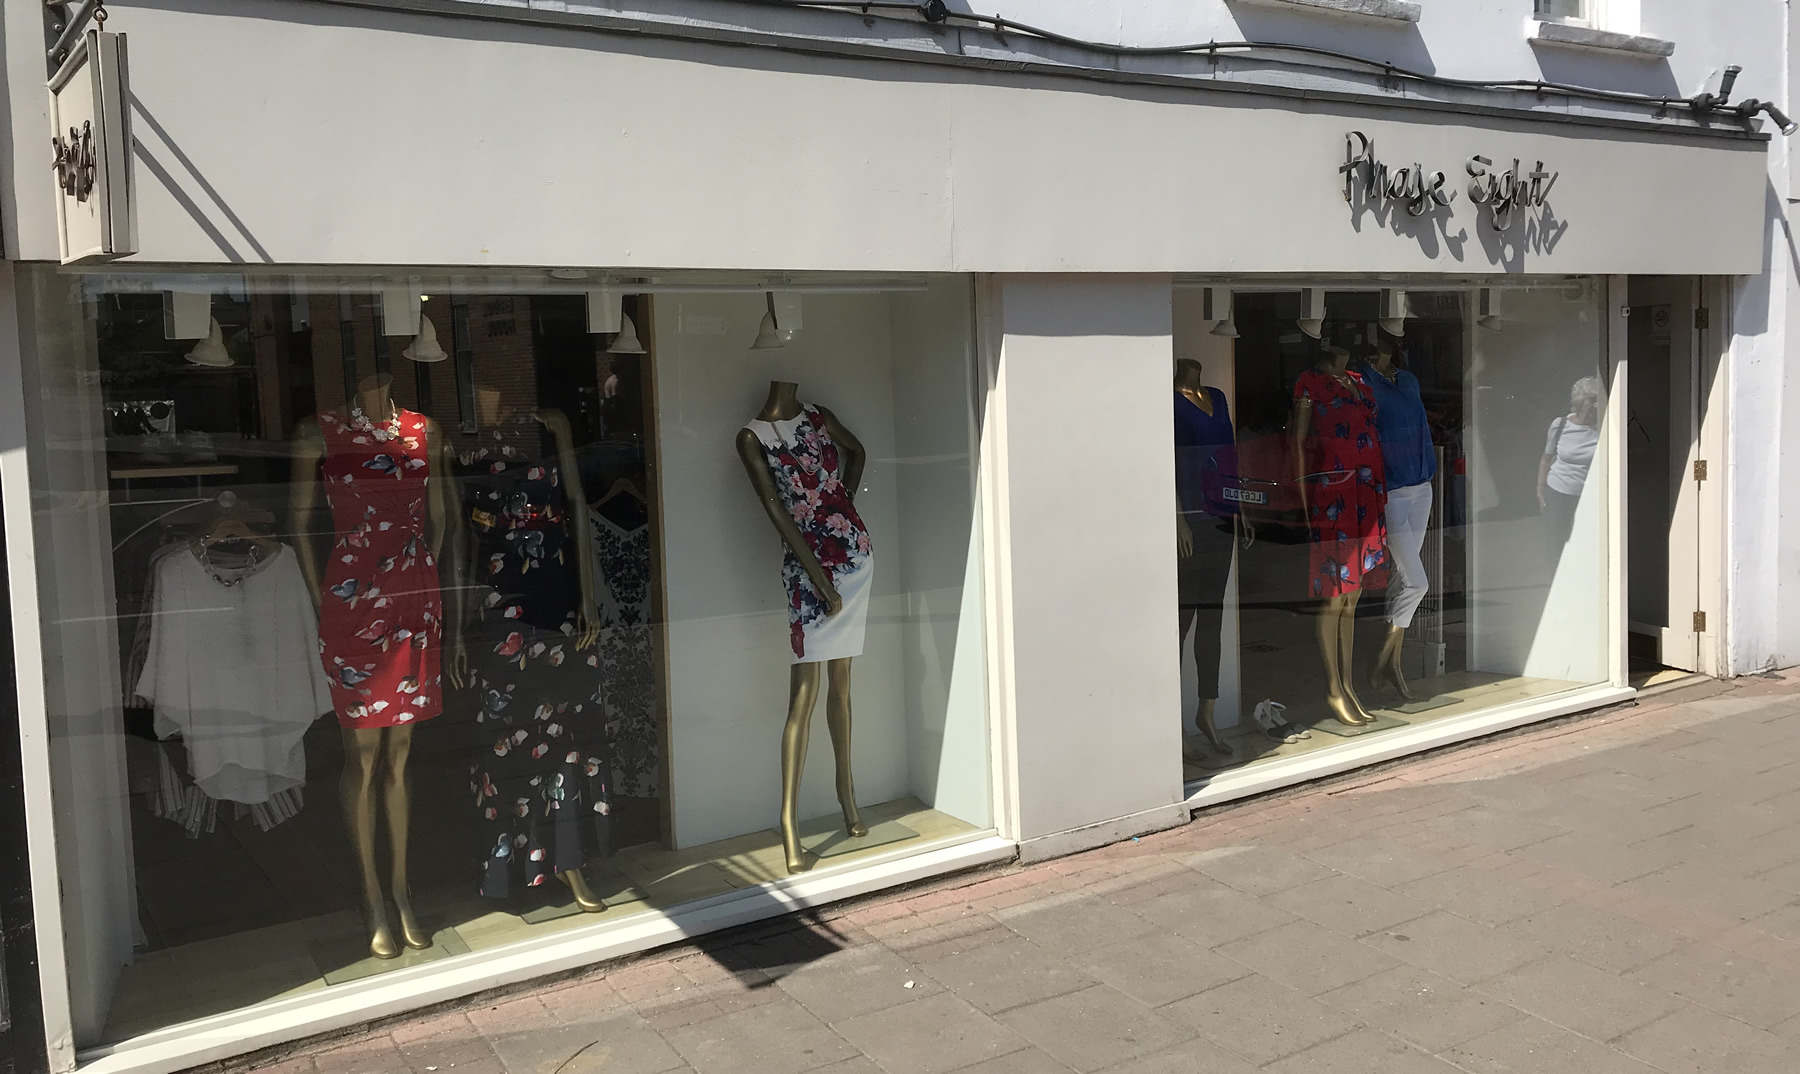 Phase Eight Clothing Store Weybridge Surrey